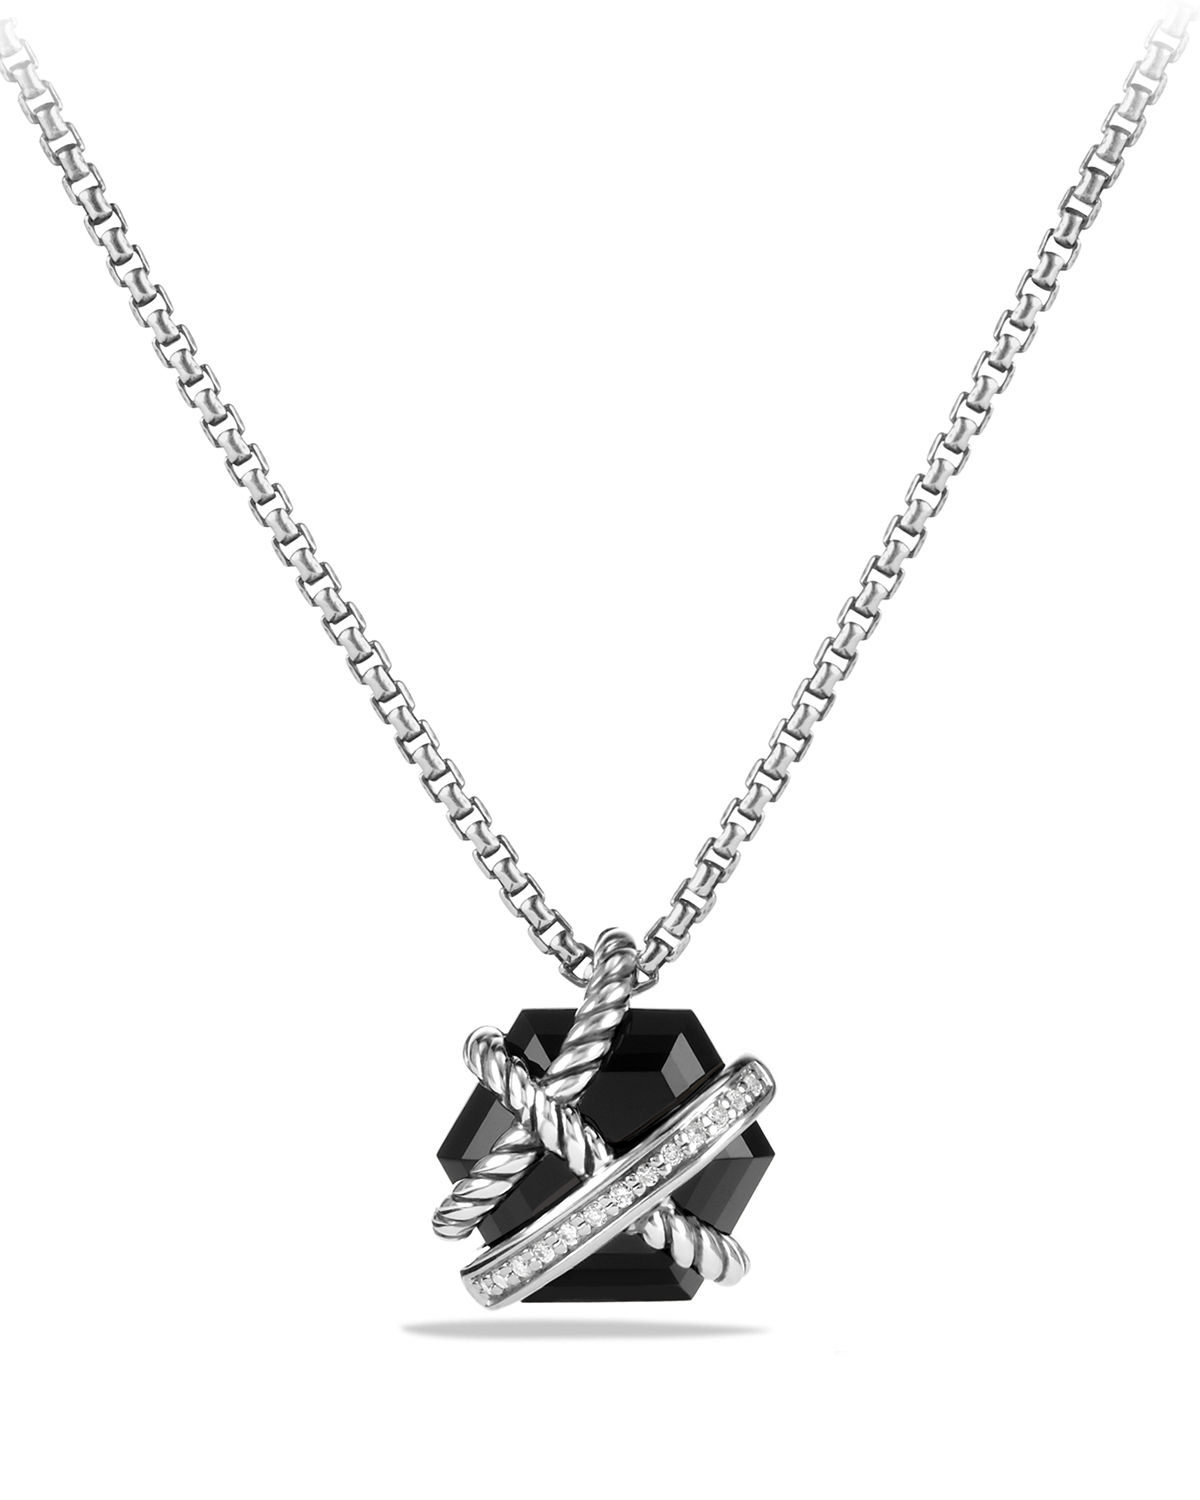 Cable Wrap Necklace with Diamonds